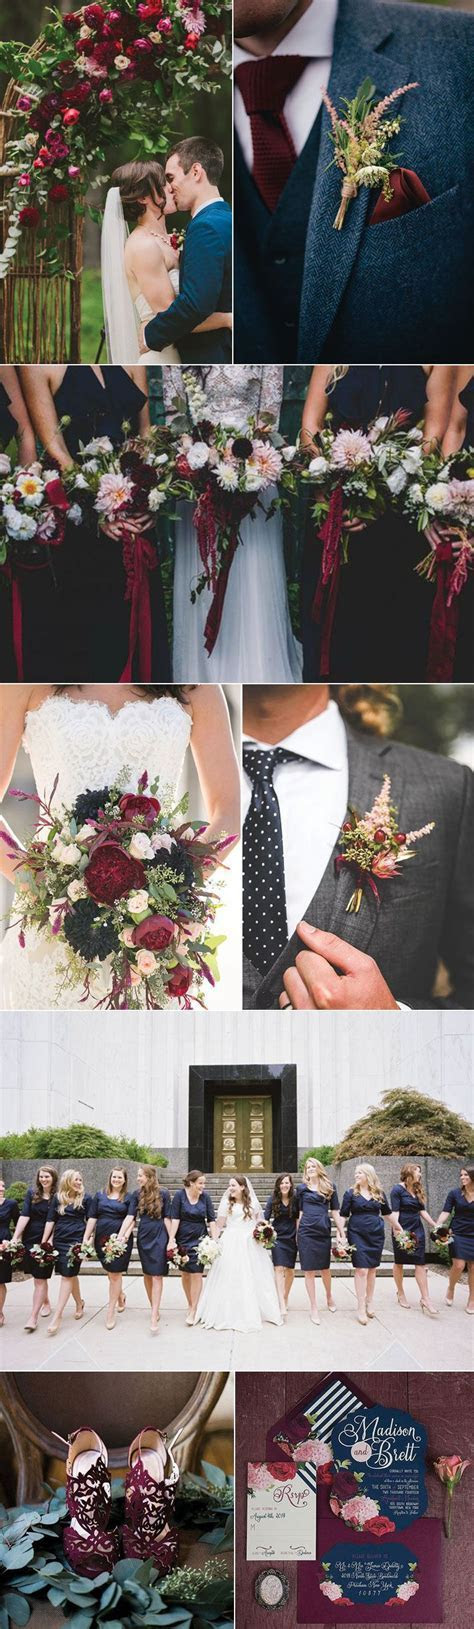 Ideas for a Marsala and Navy Blue Wedding   Wedding Color